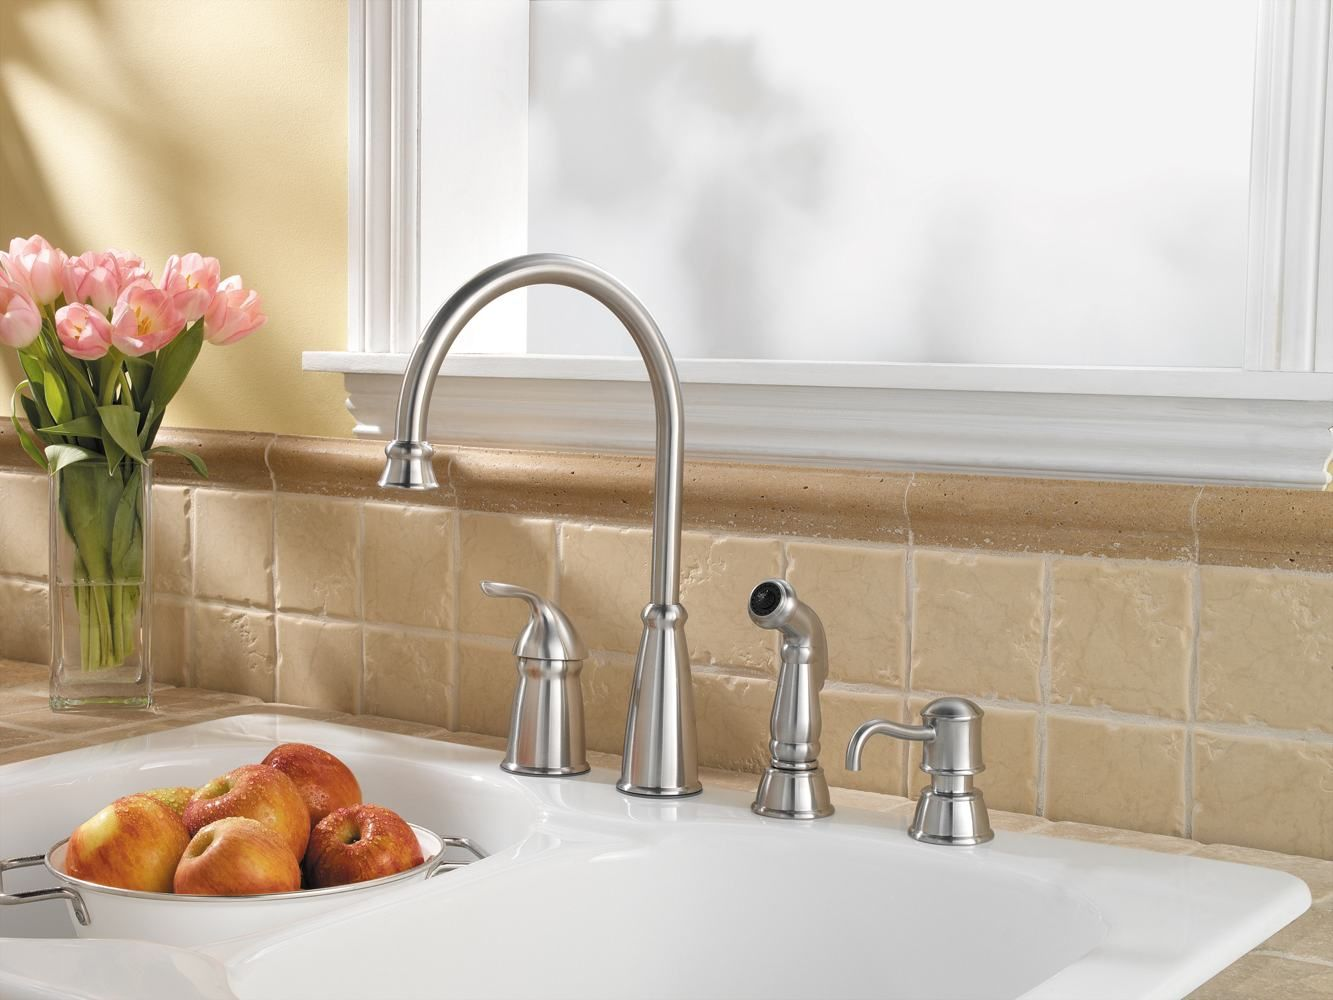 Kitchen Sink Faucets With Soap Dispenser Things You Should Know Darbylanefurniture Com In 2020 Stainless Kitchen Faucet Kitchen Faucet White Kitchen Faucet